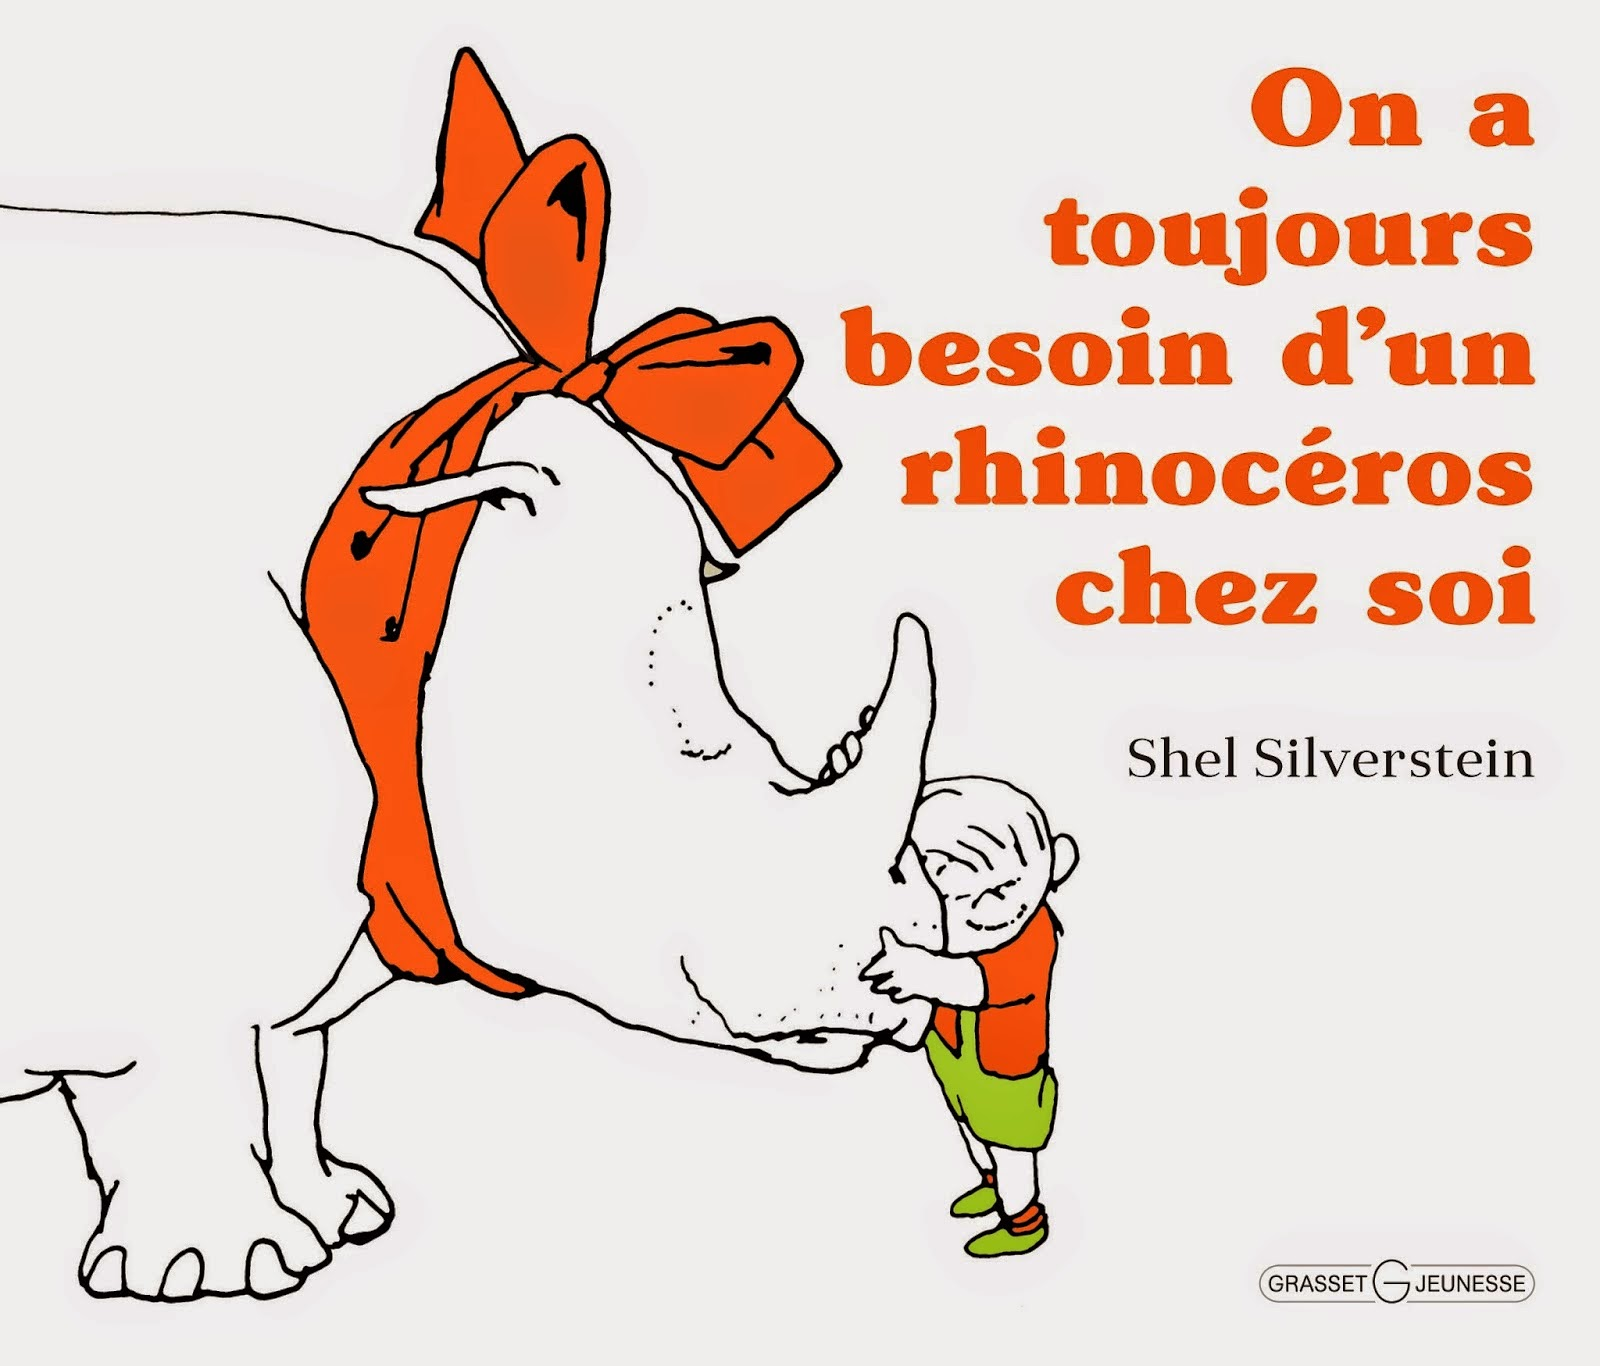 On a toujours besoin dun rhinoceros chez soi